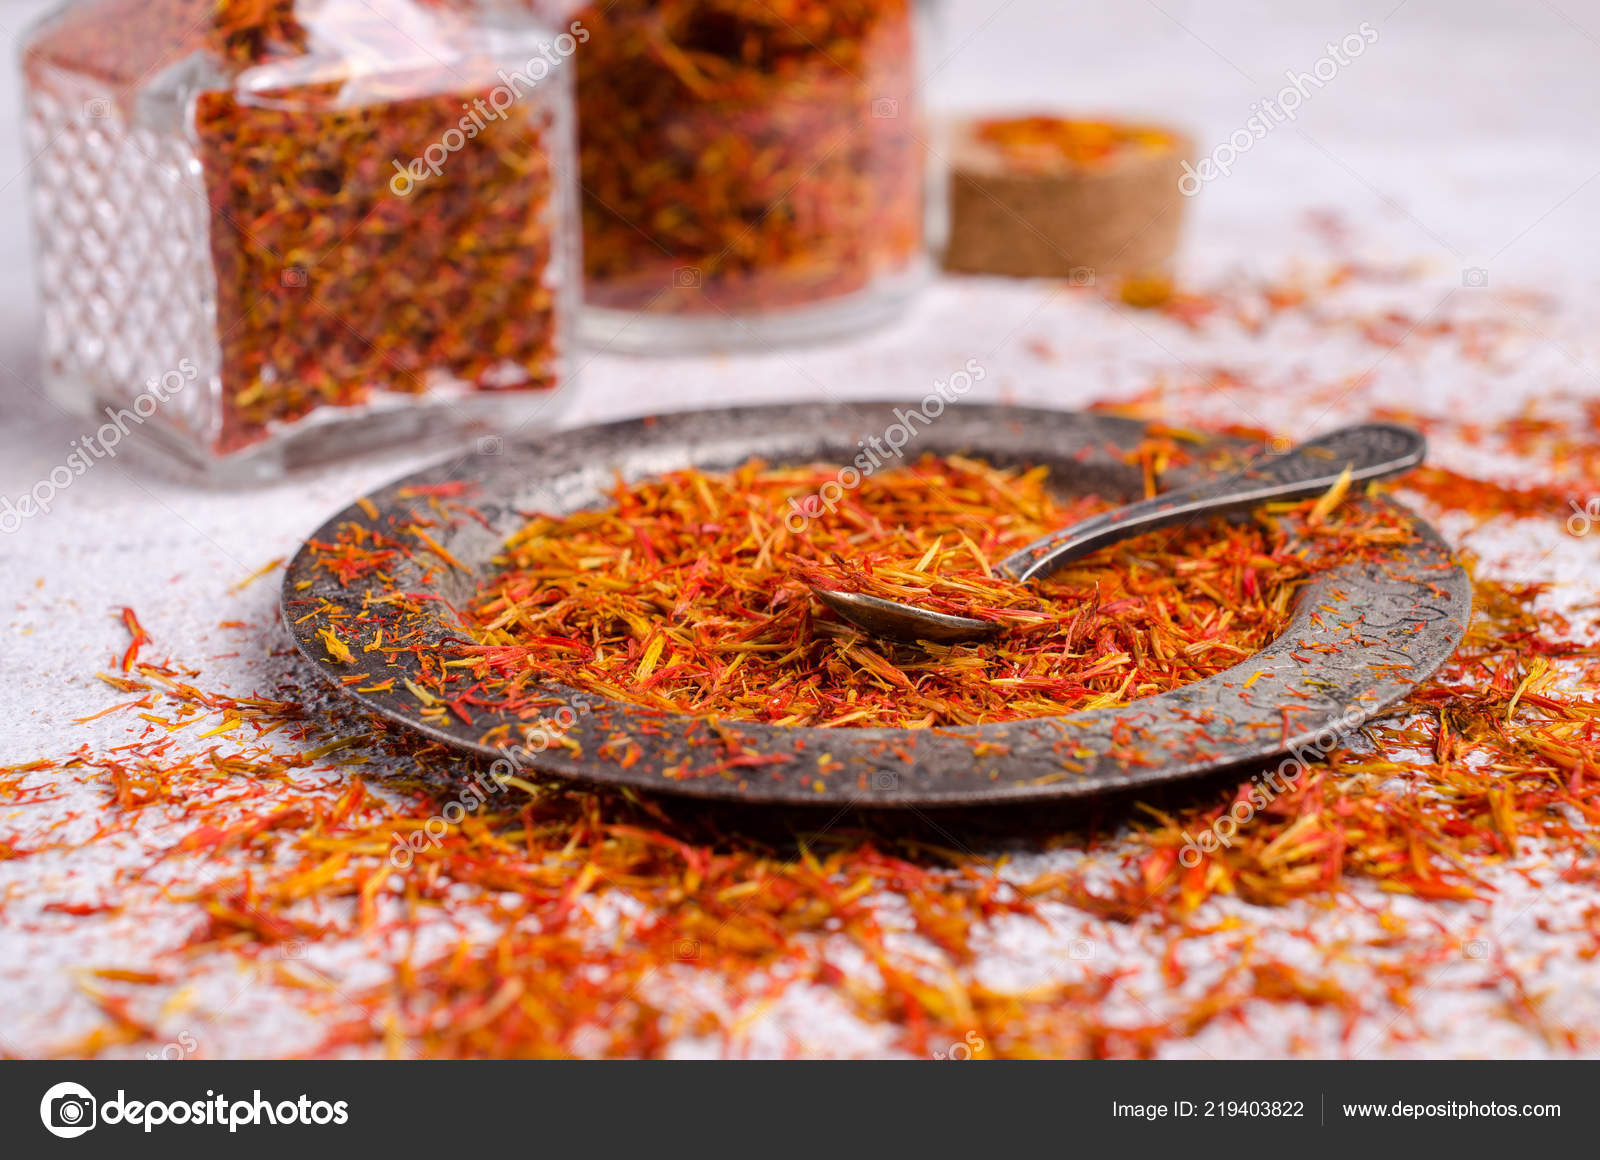 Traditional Dry Saffron Spice Stone Background Selective